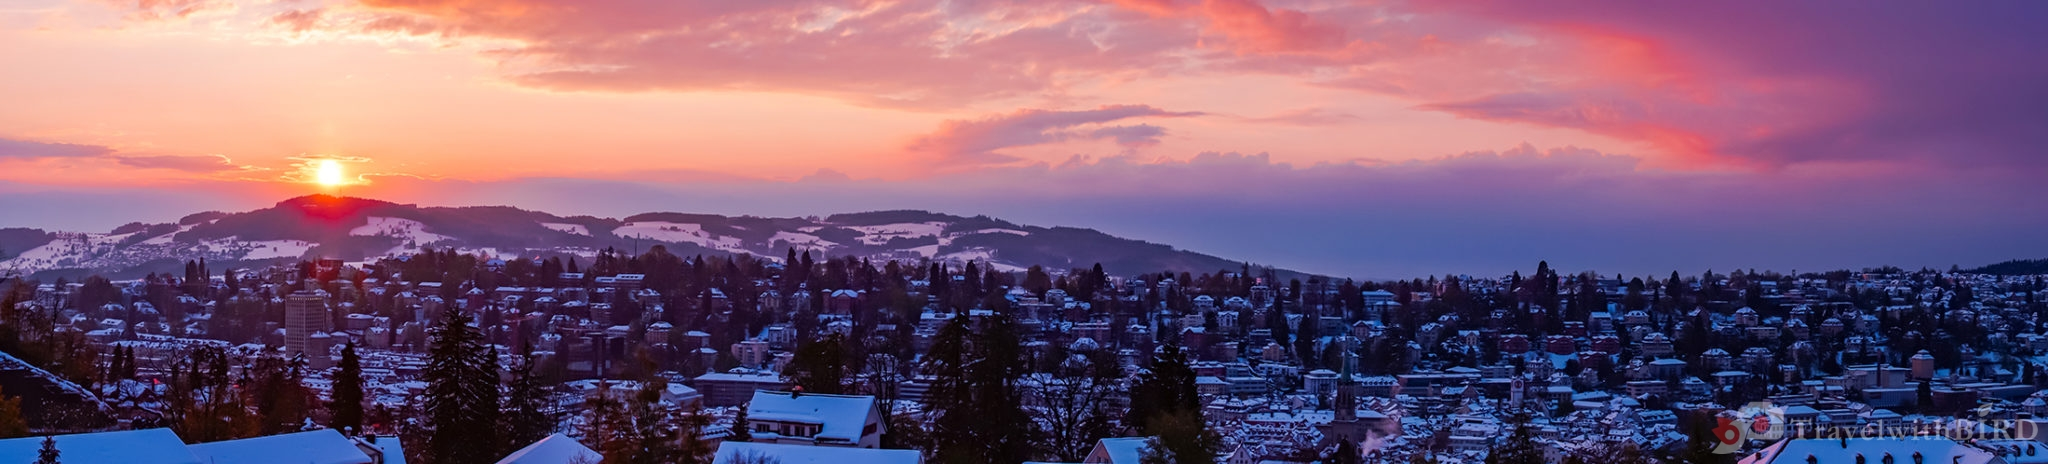 Panorama sunset over St Gallen